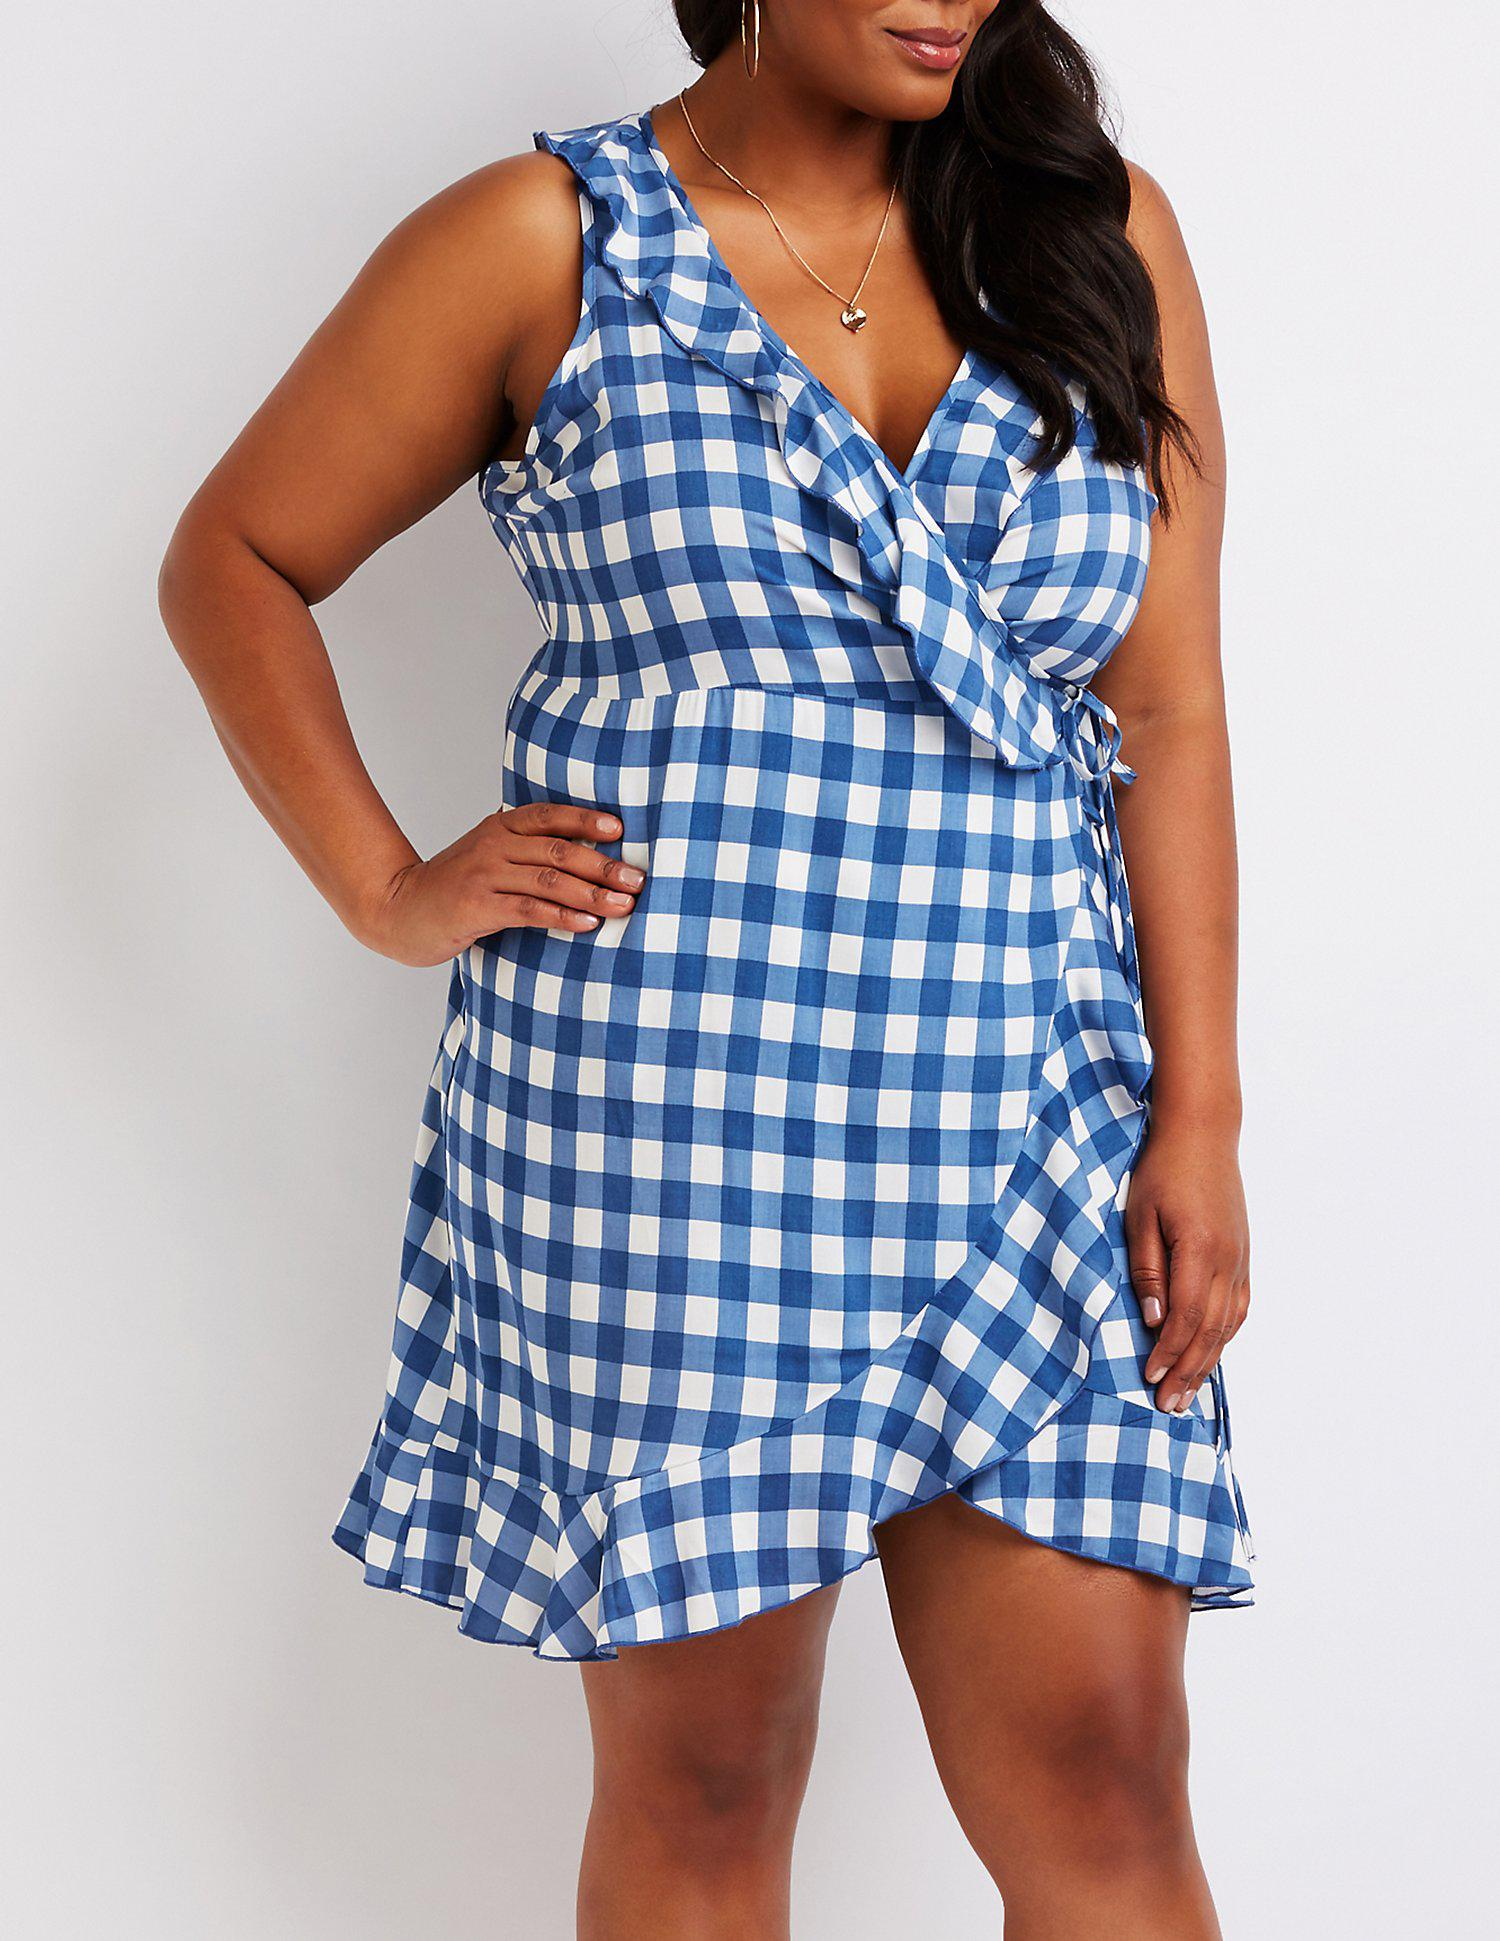 45f4d54ee8 Lyst - Charlotte Russe Plus Size Gingham Wrap Dress in Blue